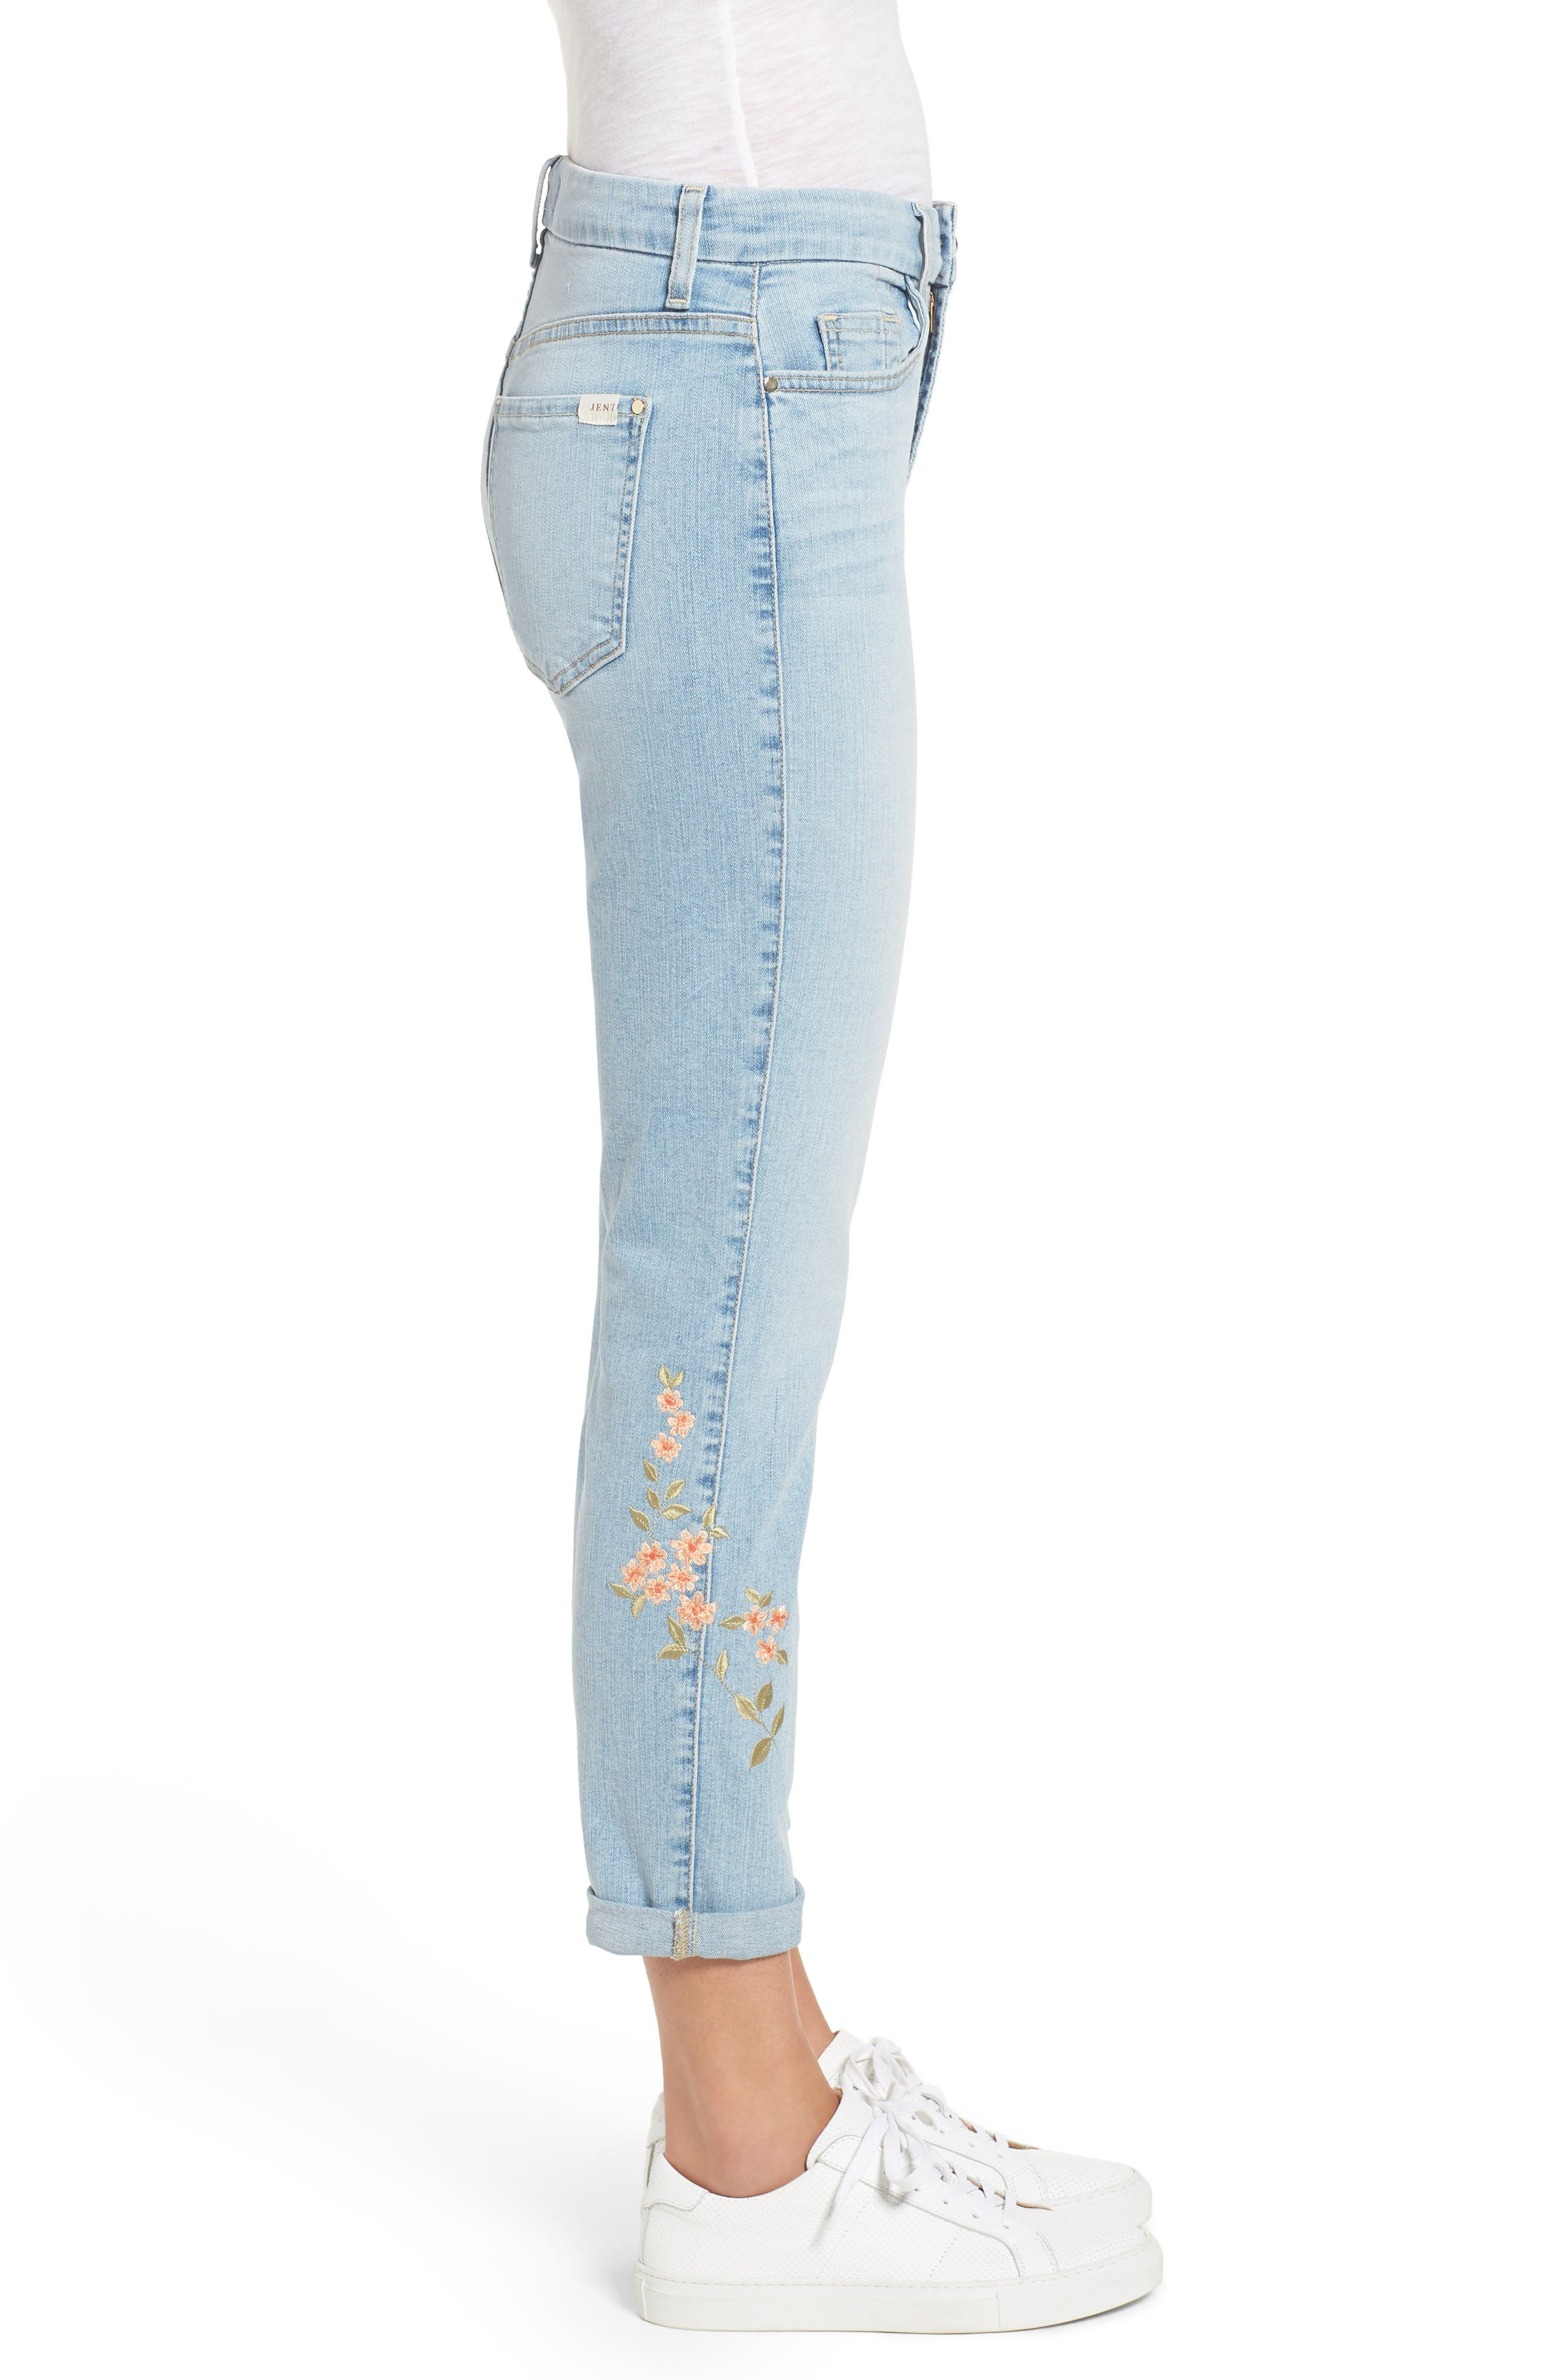 Embroidered Slim Boyfriend Jeans,                             Alternate thumbnail 3, color,                             RICHE TOUCH PLAYA VISTA